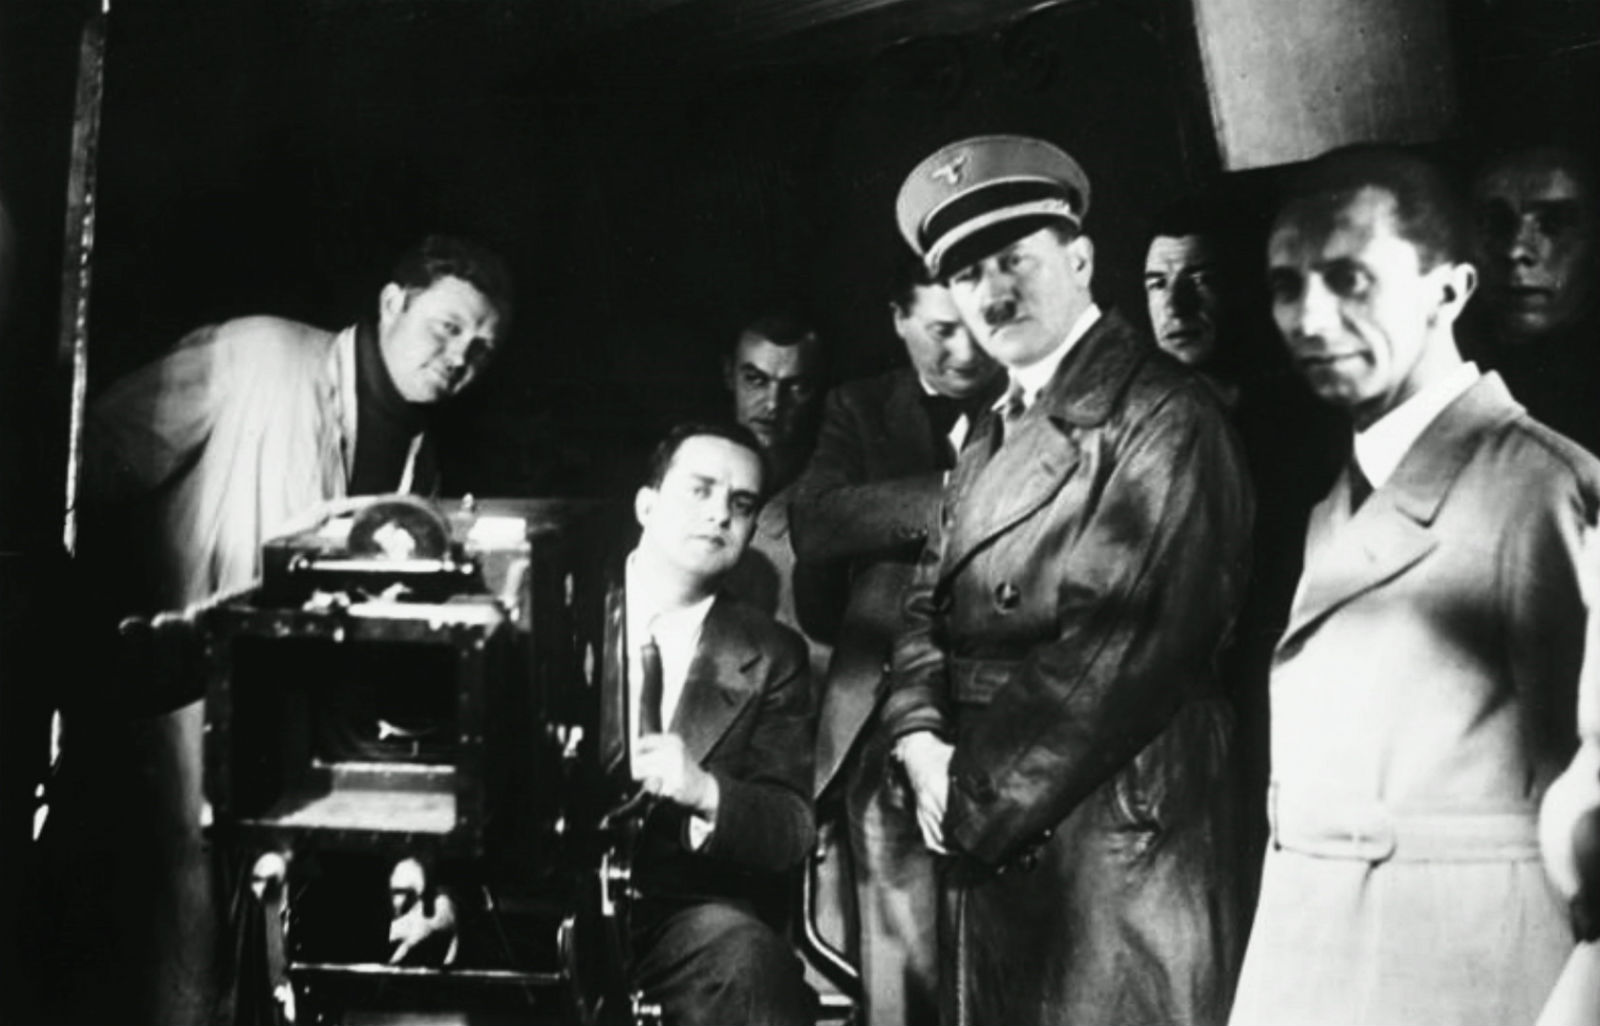 Hitler and Goebbels on set. No popcorn blockbusters for these knuckleheads...